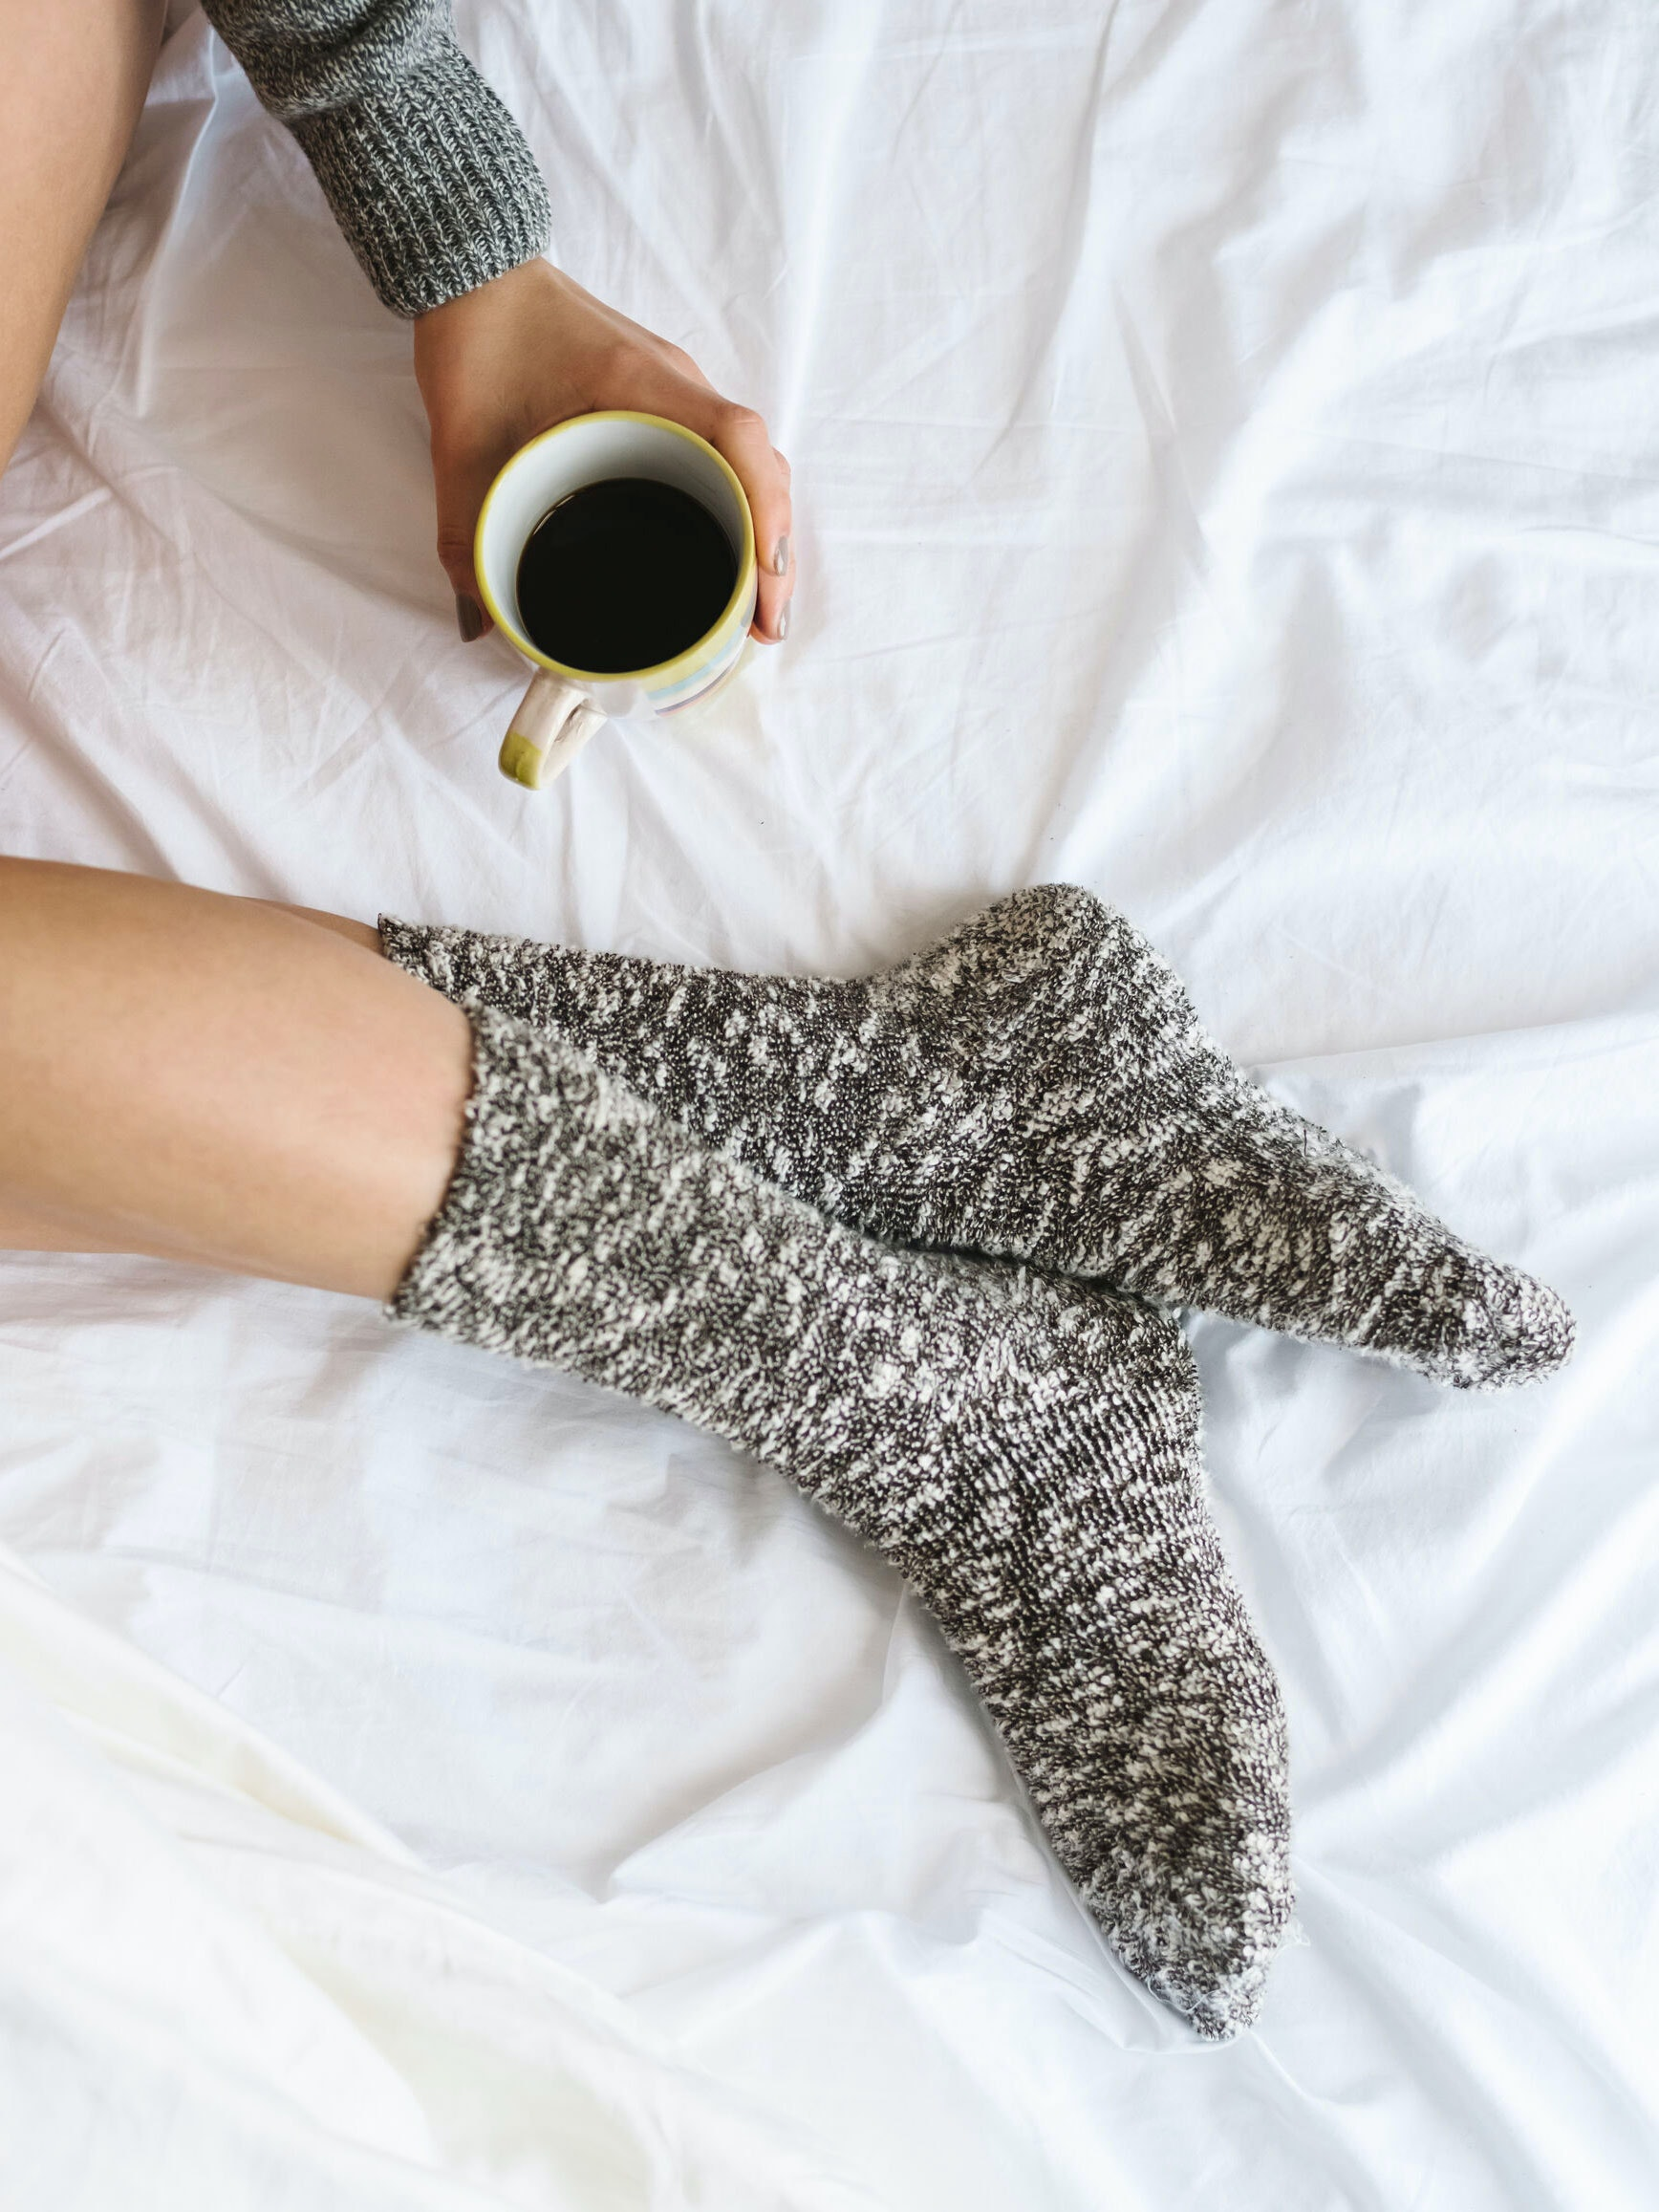 Person's feet wearing socks holding coffee